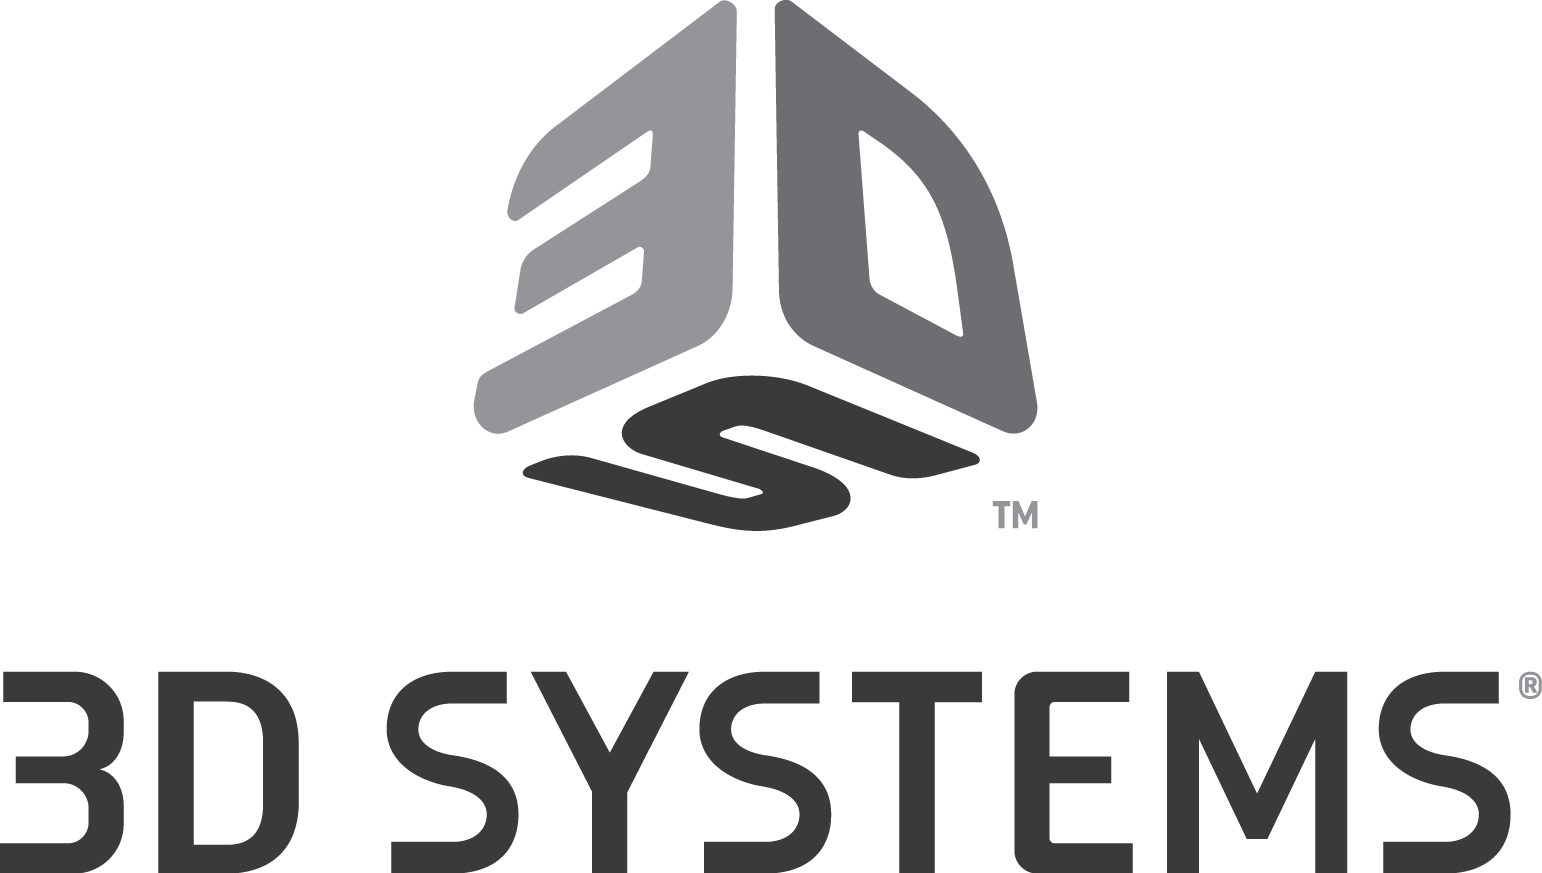 3D Systems, Inc. – National Center for Manufacturing Sciences